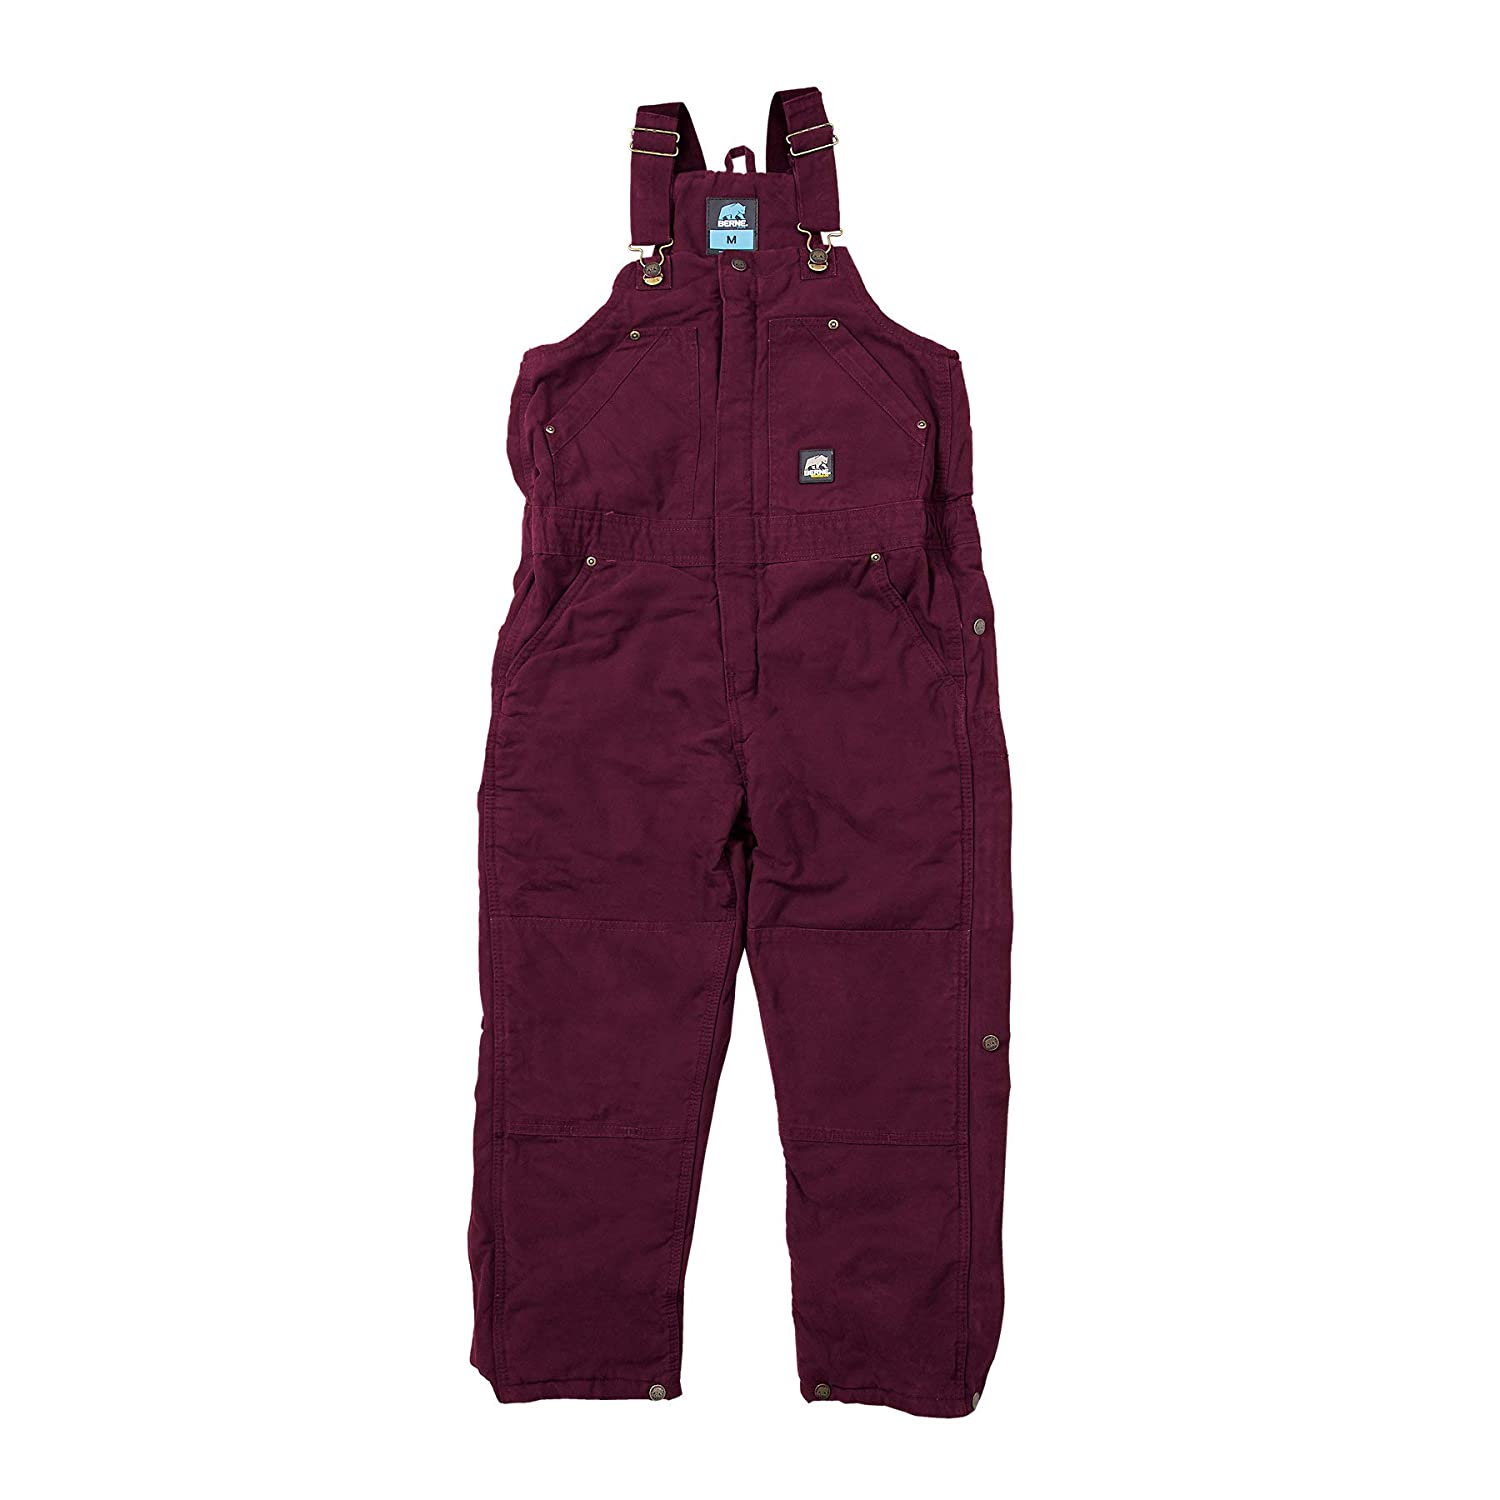 Berne Apparel BB21 Youths Sanded INS Bib Quilt Lined Overall Plum Large